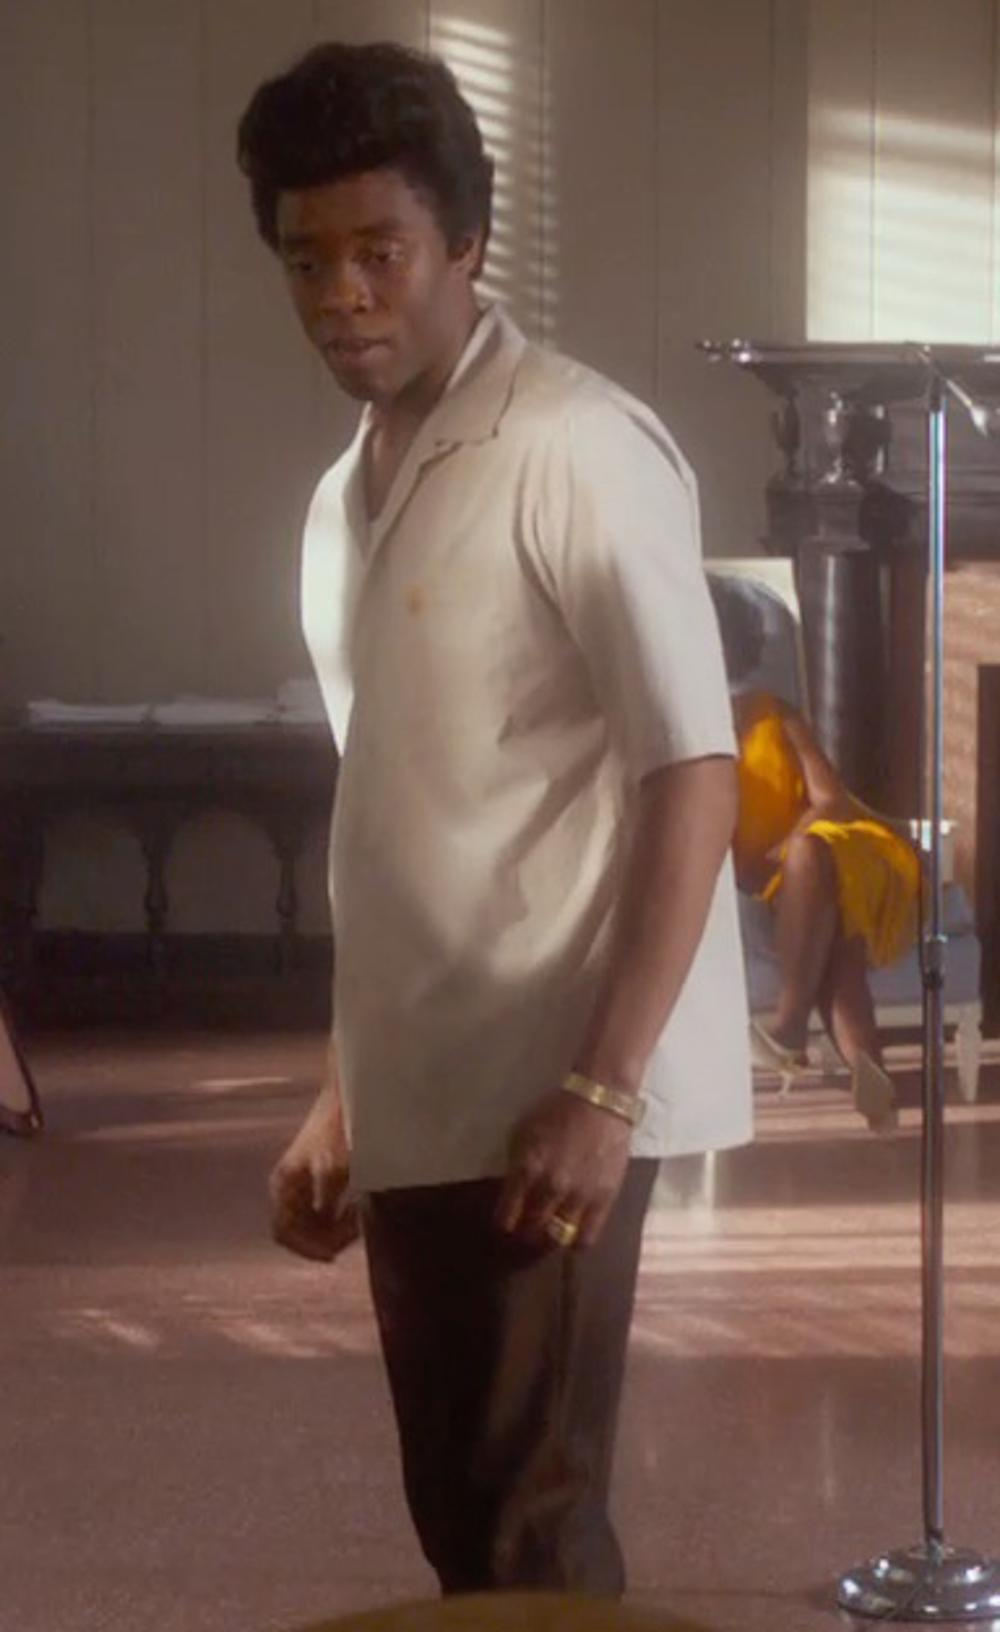 Chadwick Boseman with Dockers Men's Comfort Khaki D4 Relaxed Fit Flat Front Pant in Get On Up